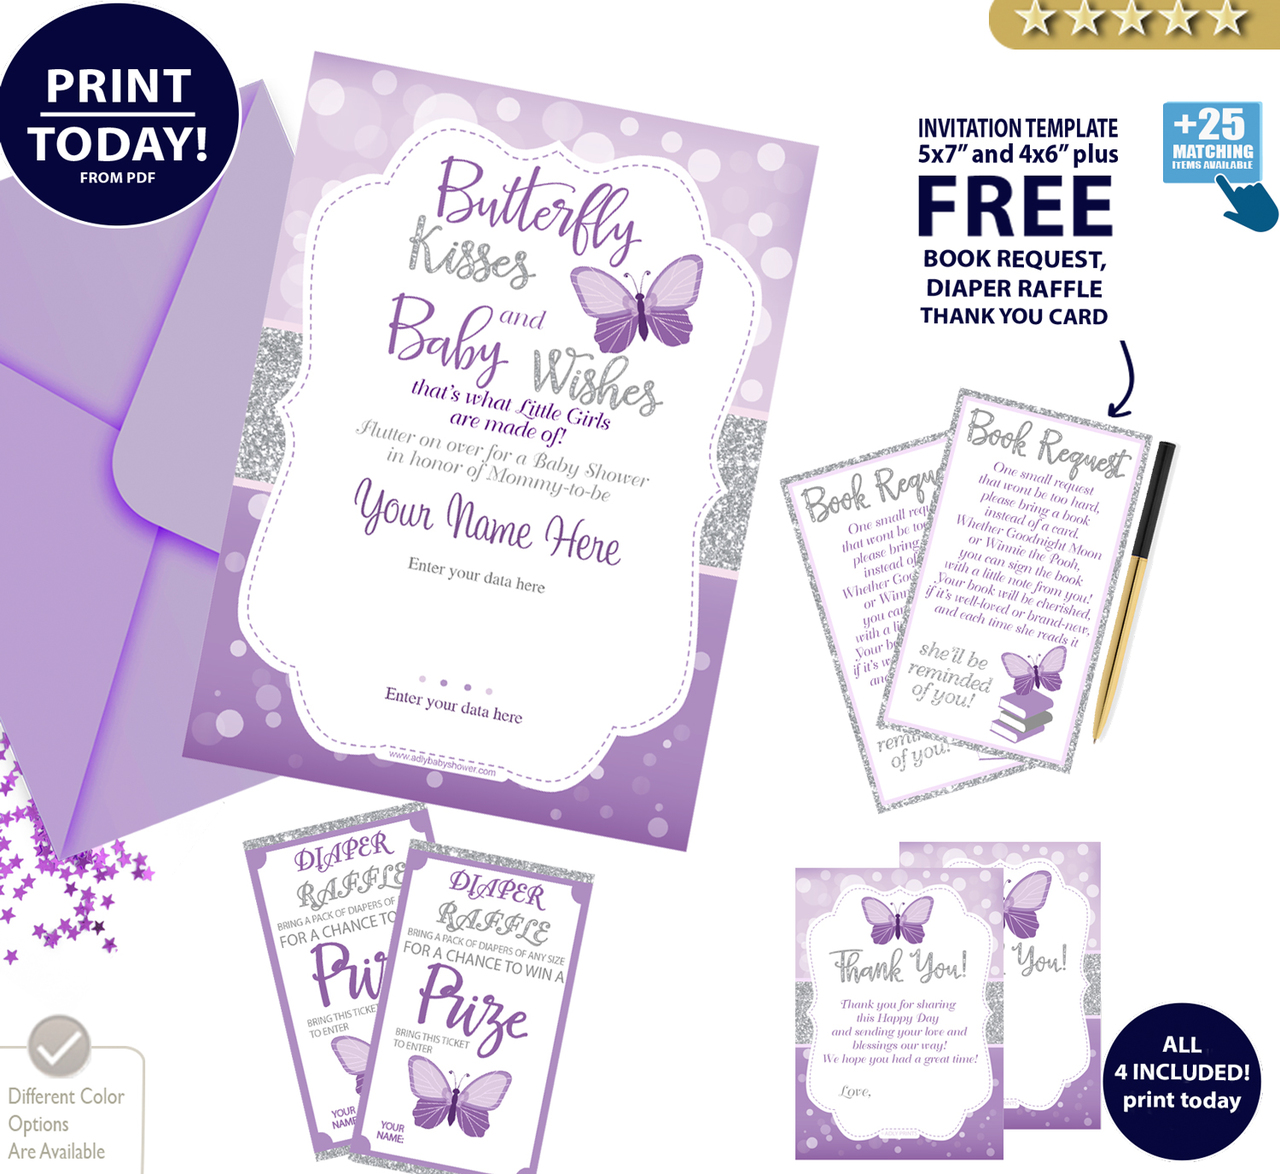 Butterfly Kisses Invitation In Purple And Silver With Glitters For Baby Shower Editable With Free Book Request Thank You Card And Diaper Raffle